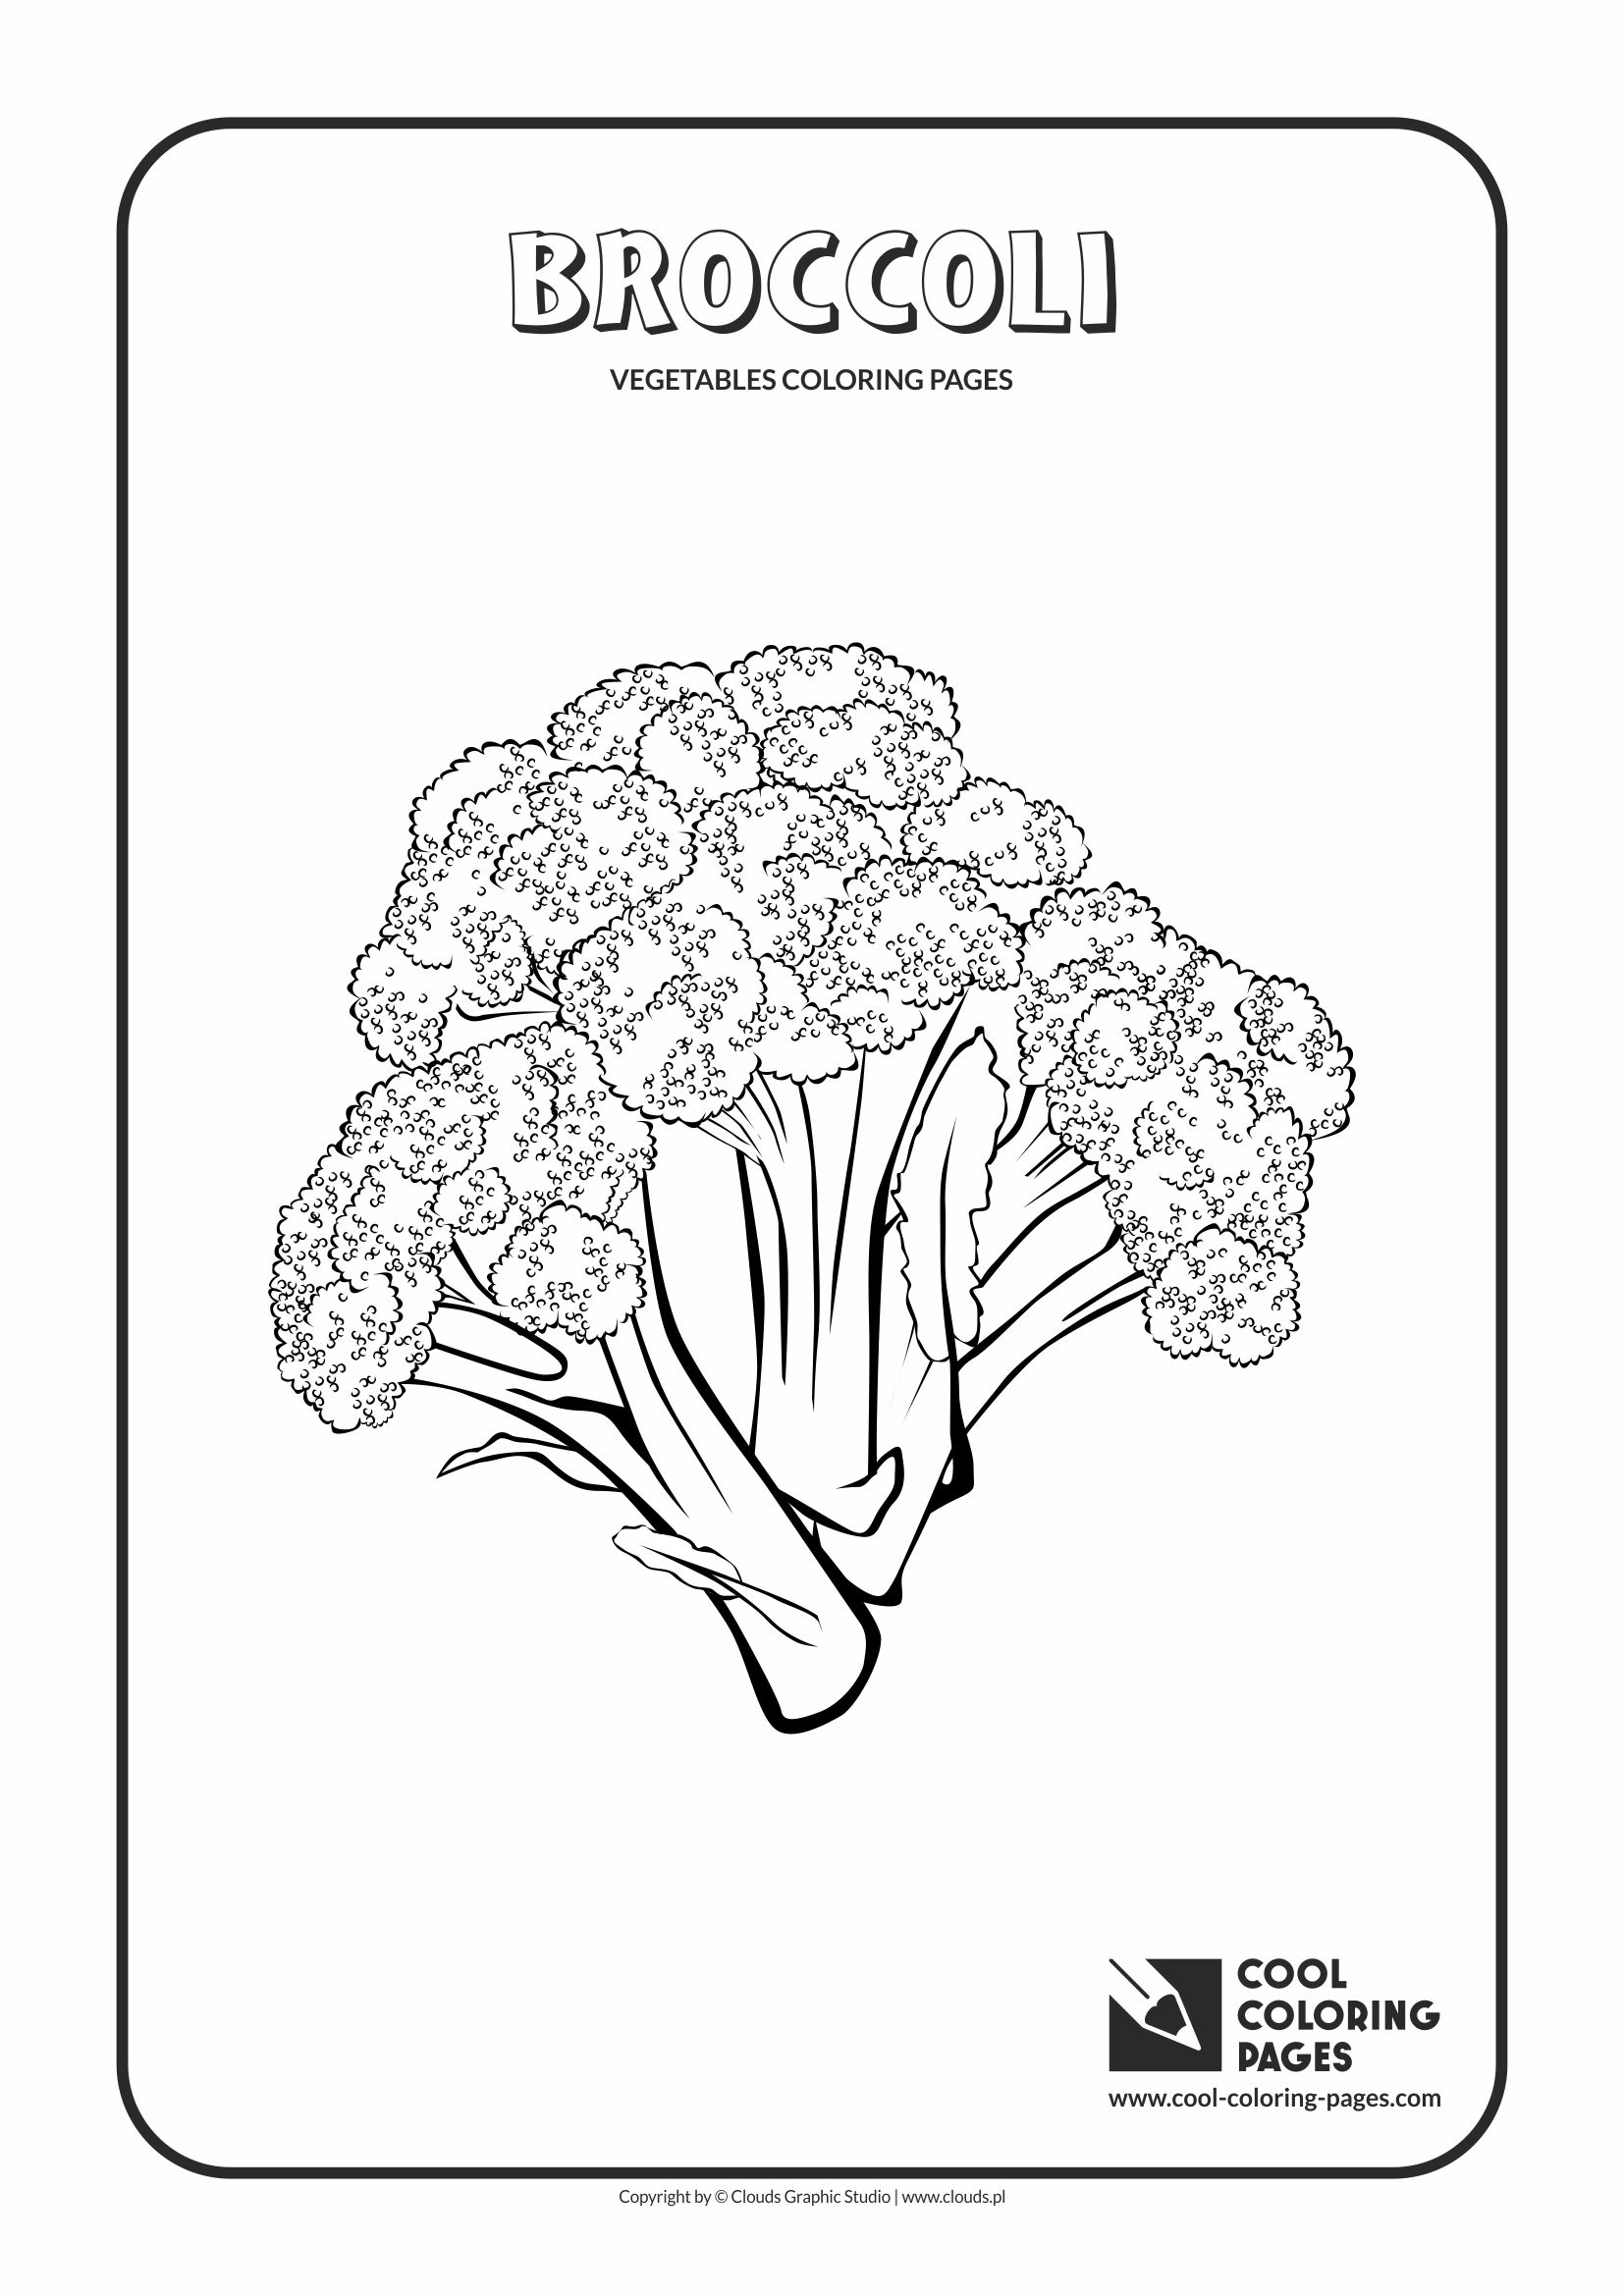 cool coloring pages vegetables coloring pages